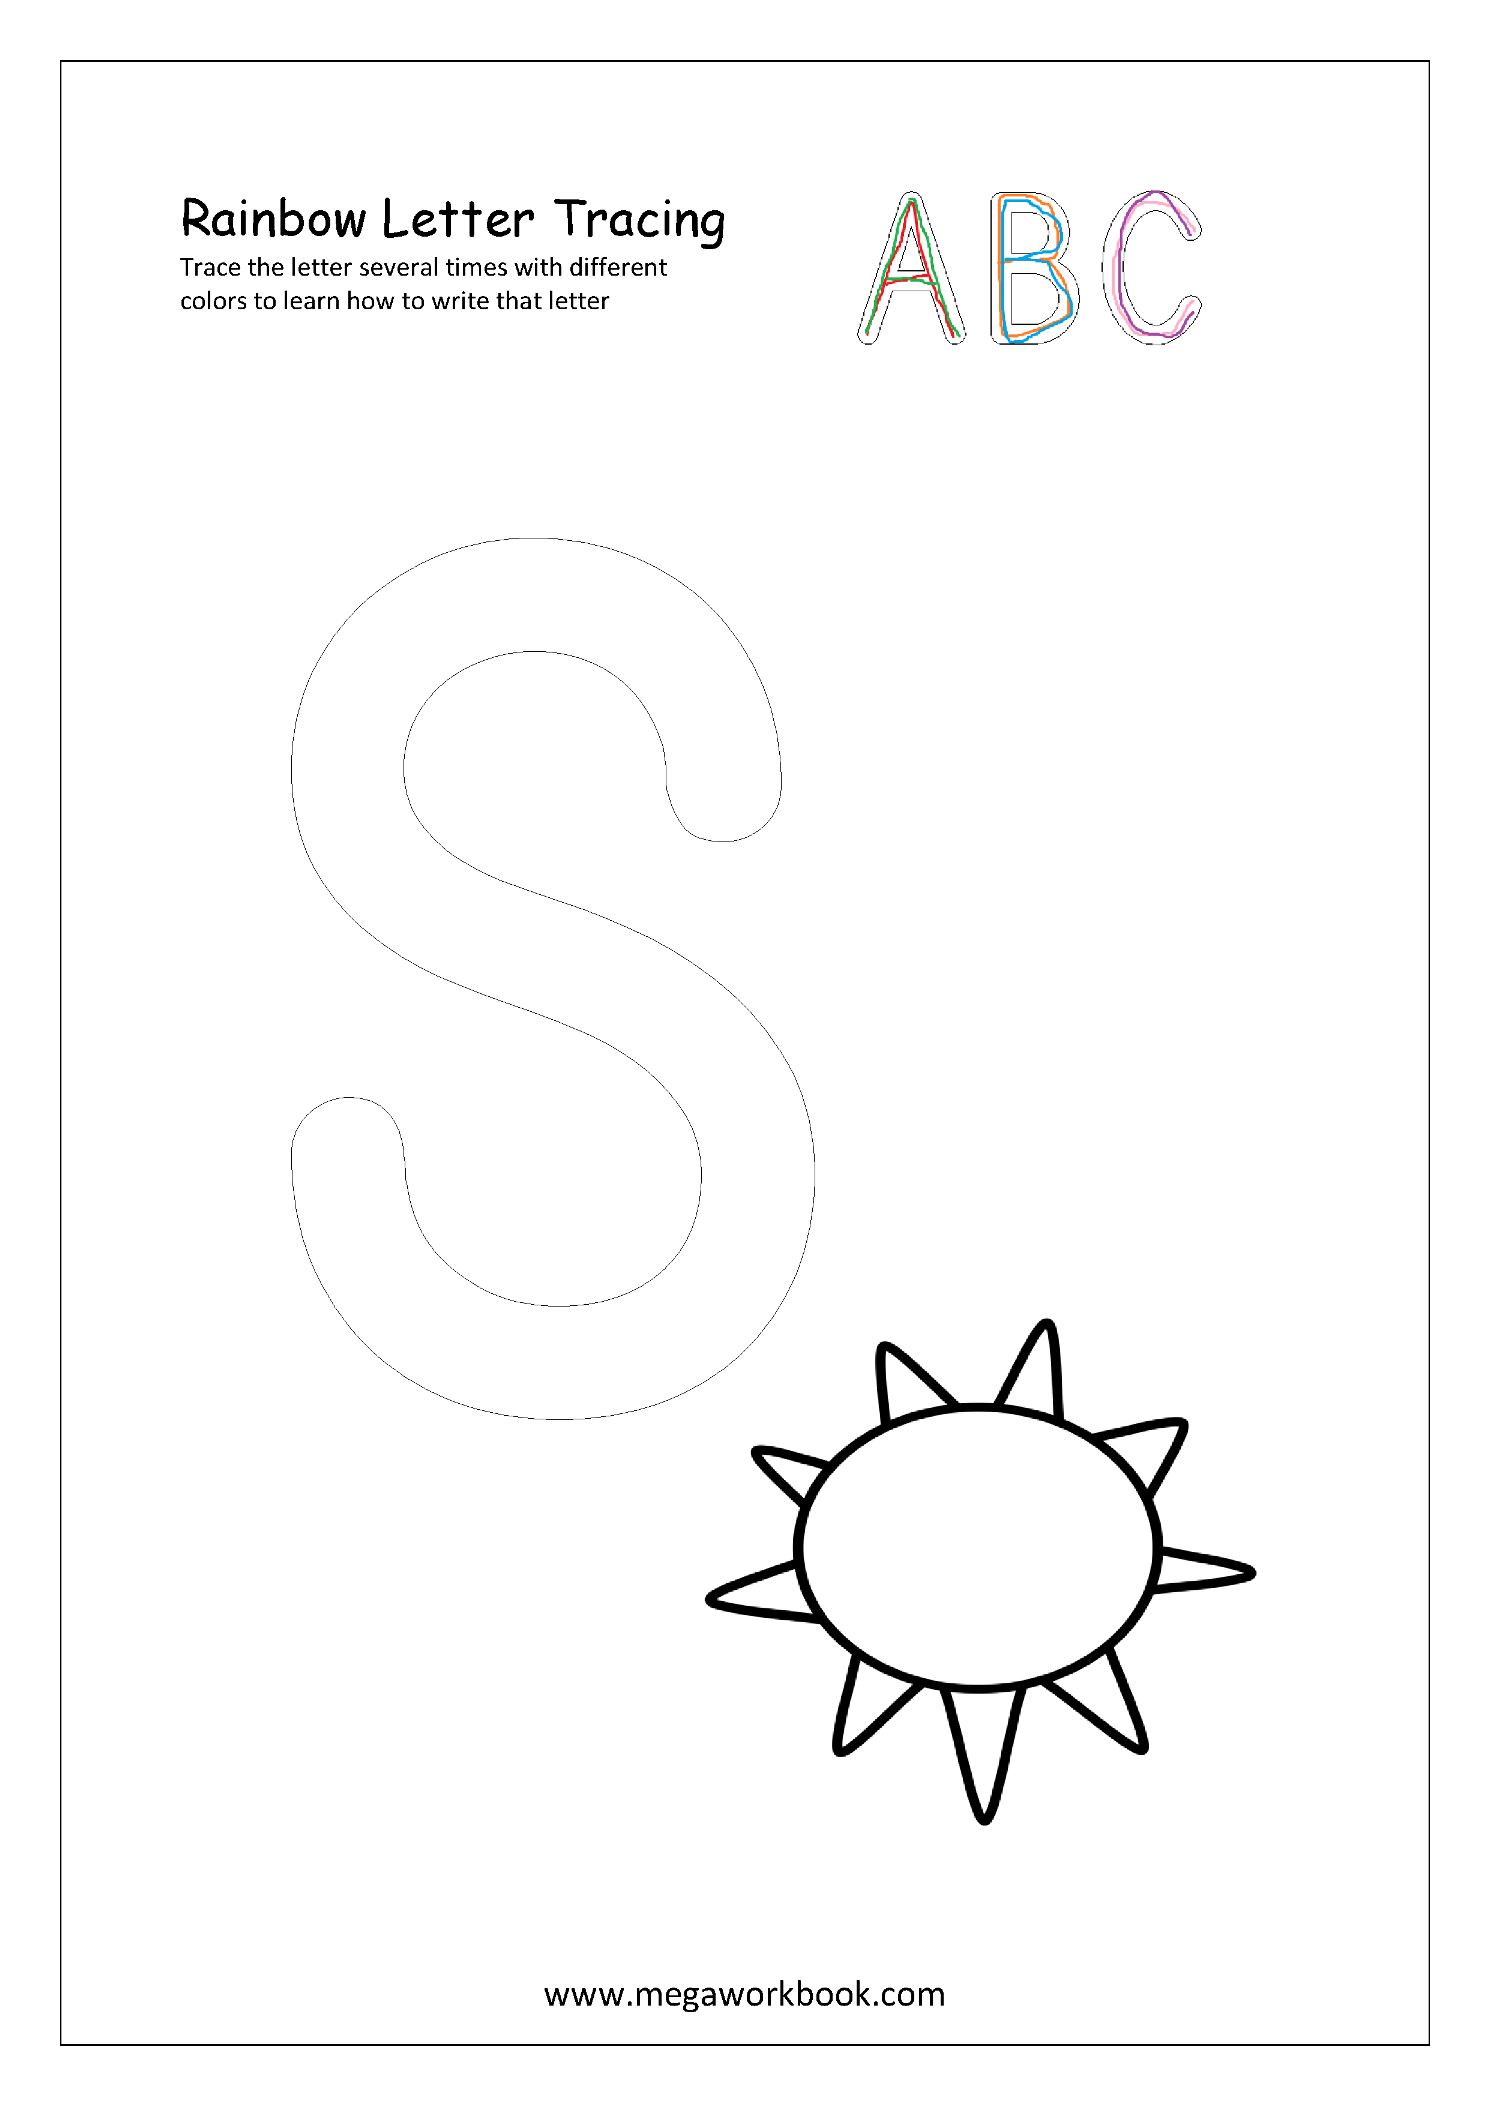 Free Printable Rainbow Writing Worksheets - Rainbow Letter